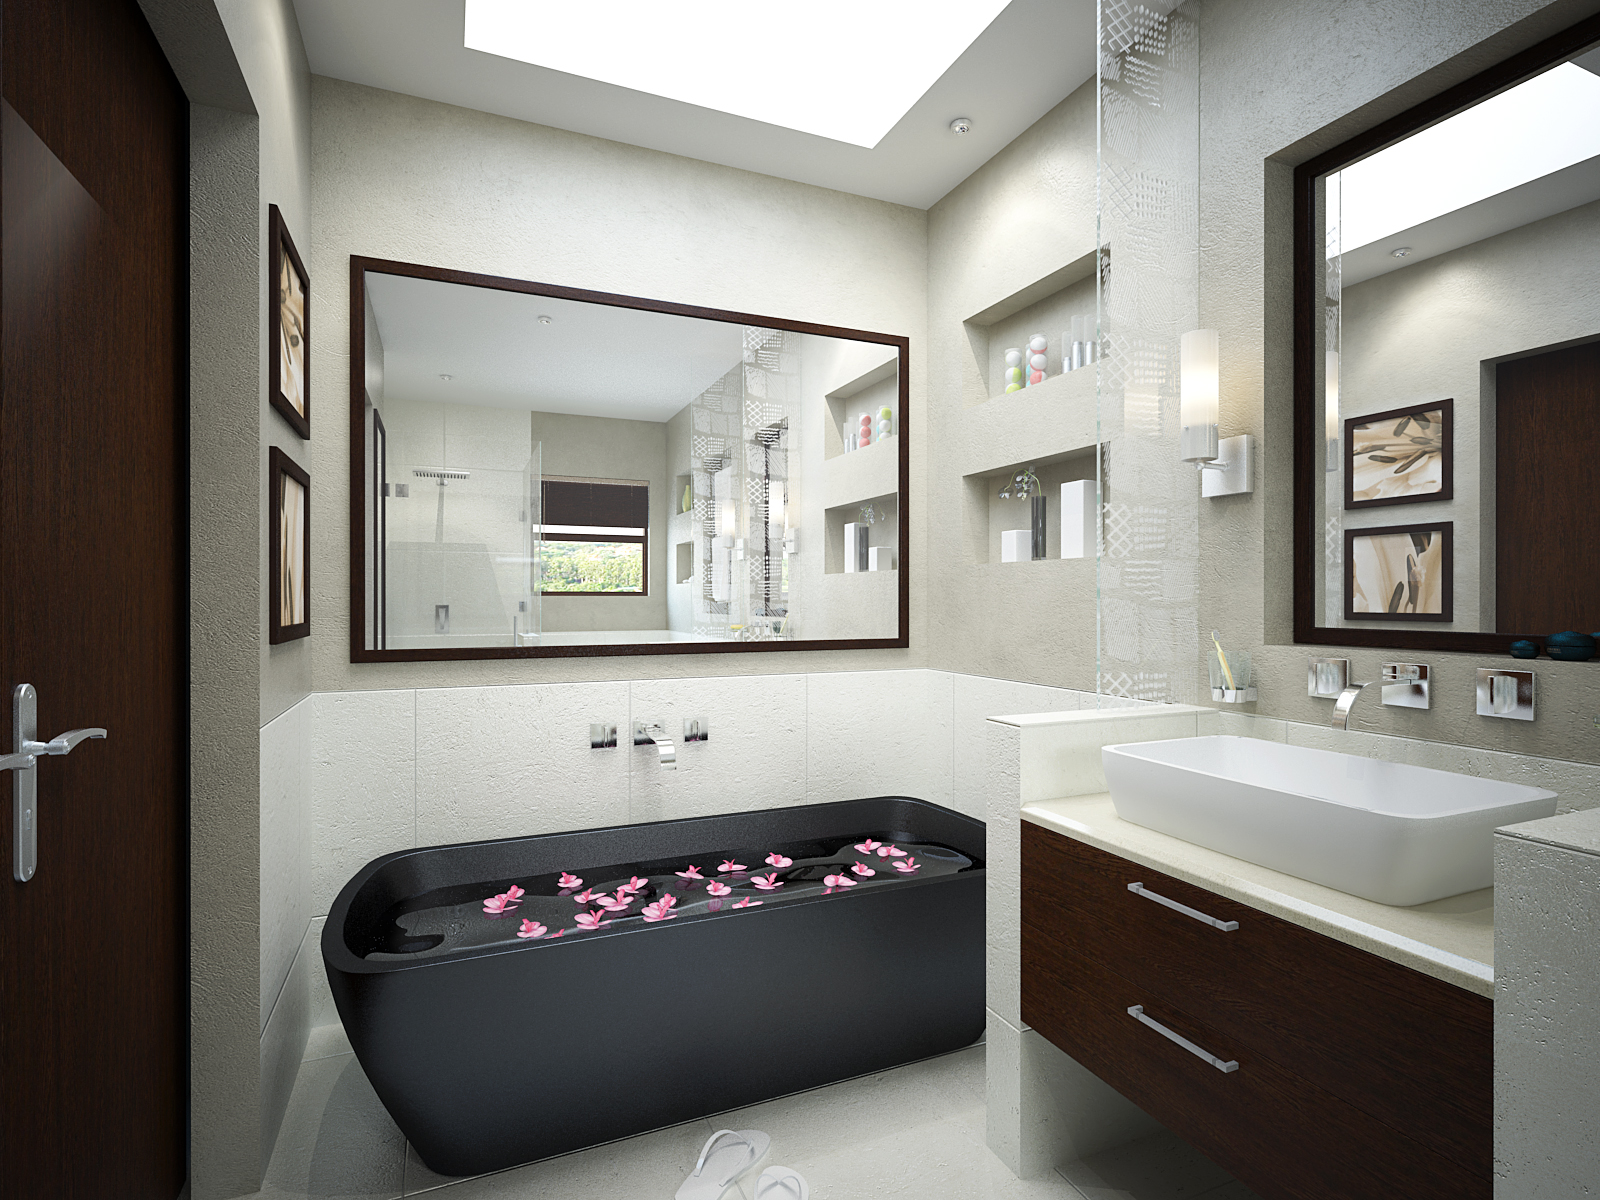 Home bathroom design ideas | Hawk Haven